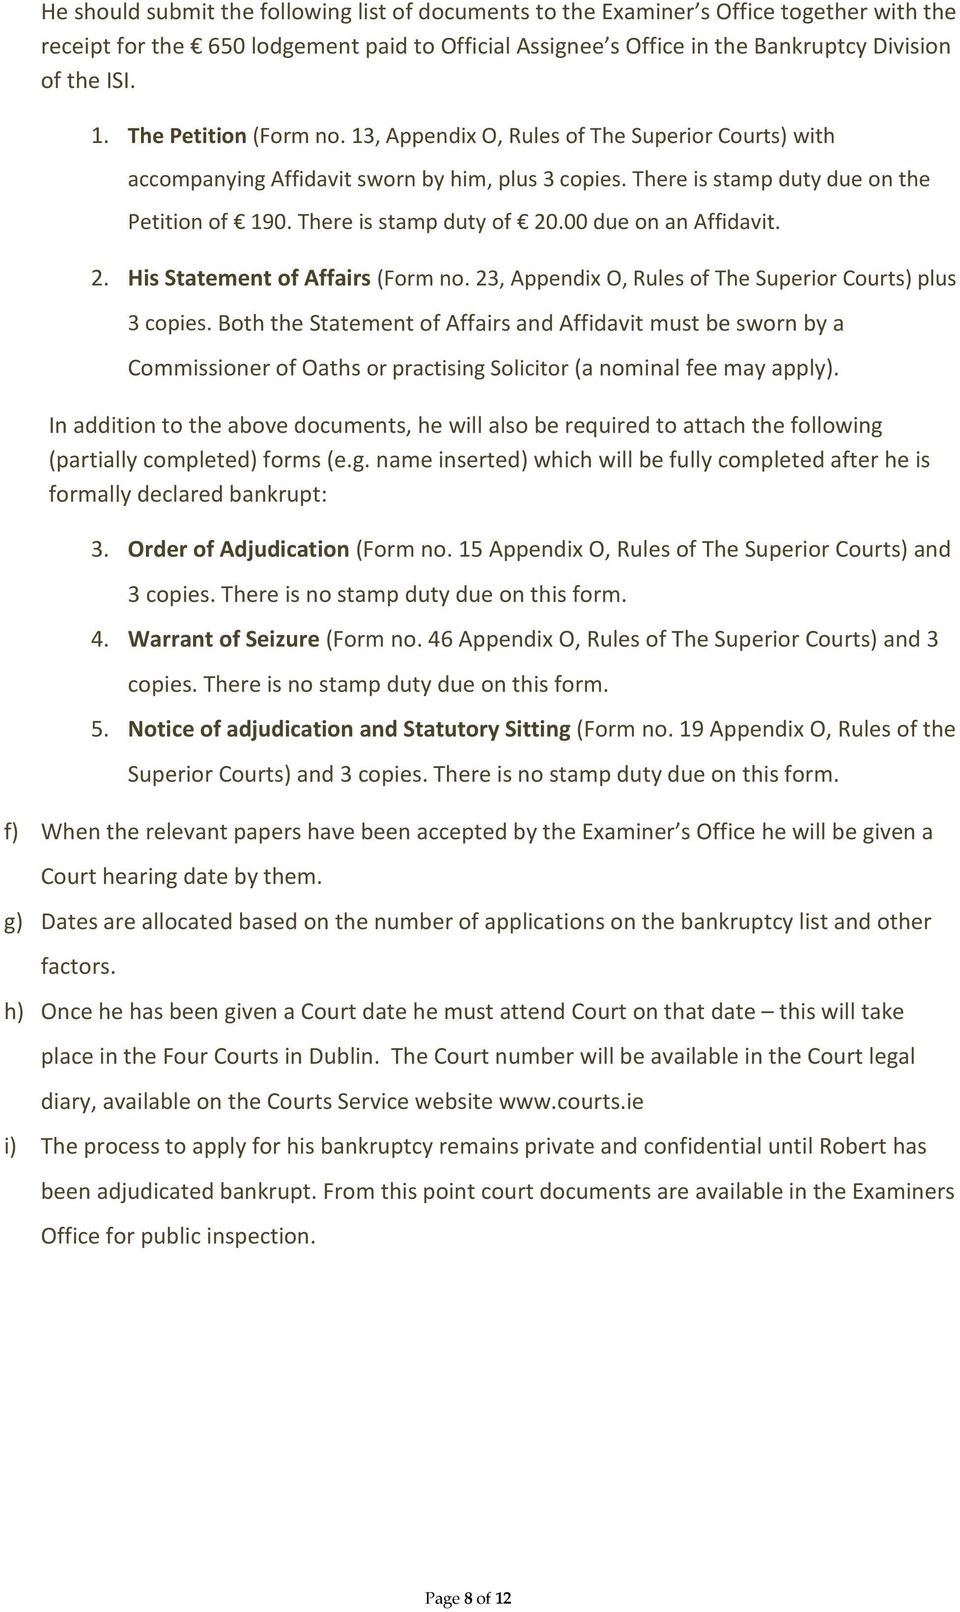 00 due on an Affidavit. 2. His Statement of Affairs (Form no. 23, Appendix O, Rules of The Superior Courts) plus 3 copies.